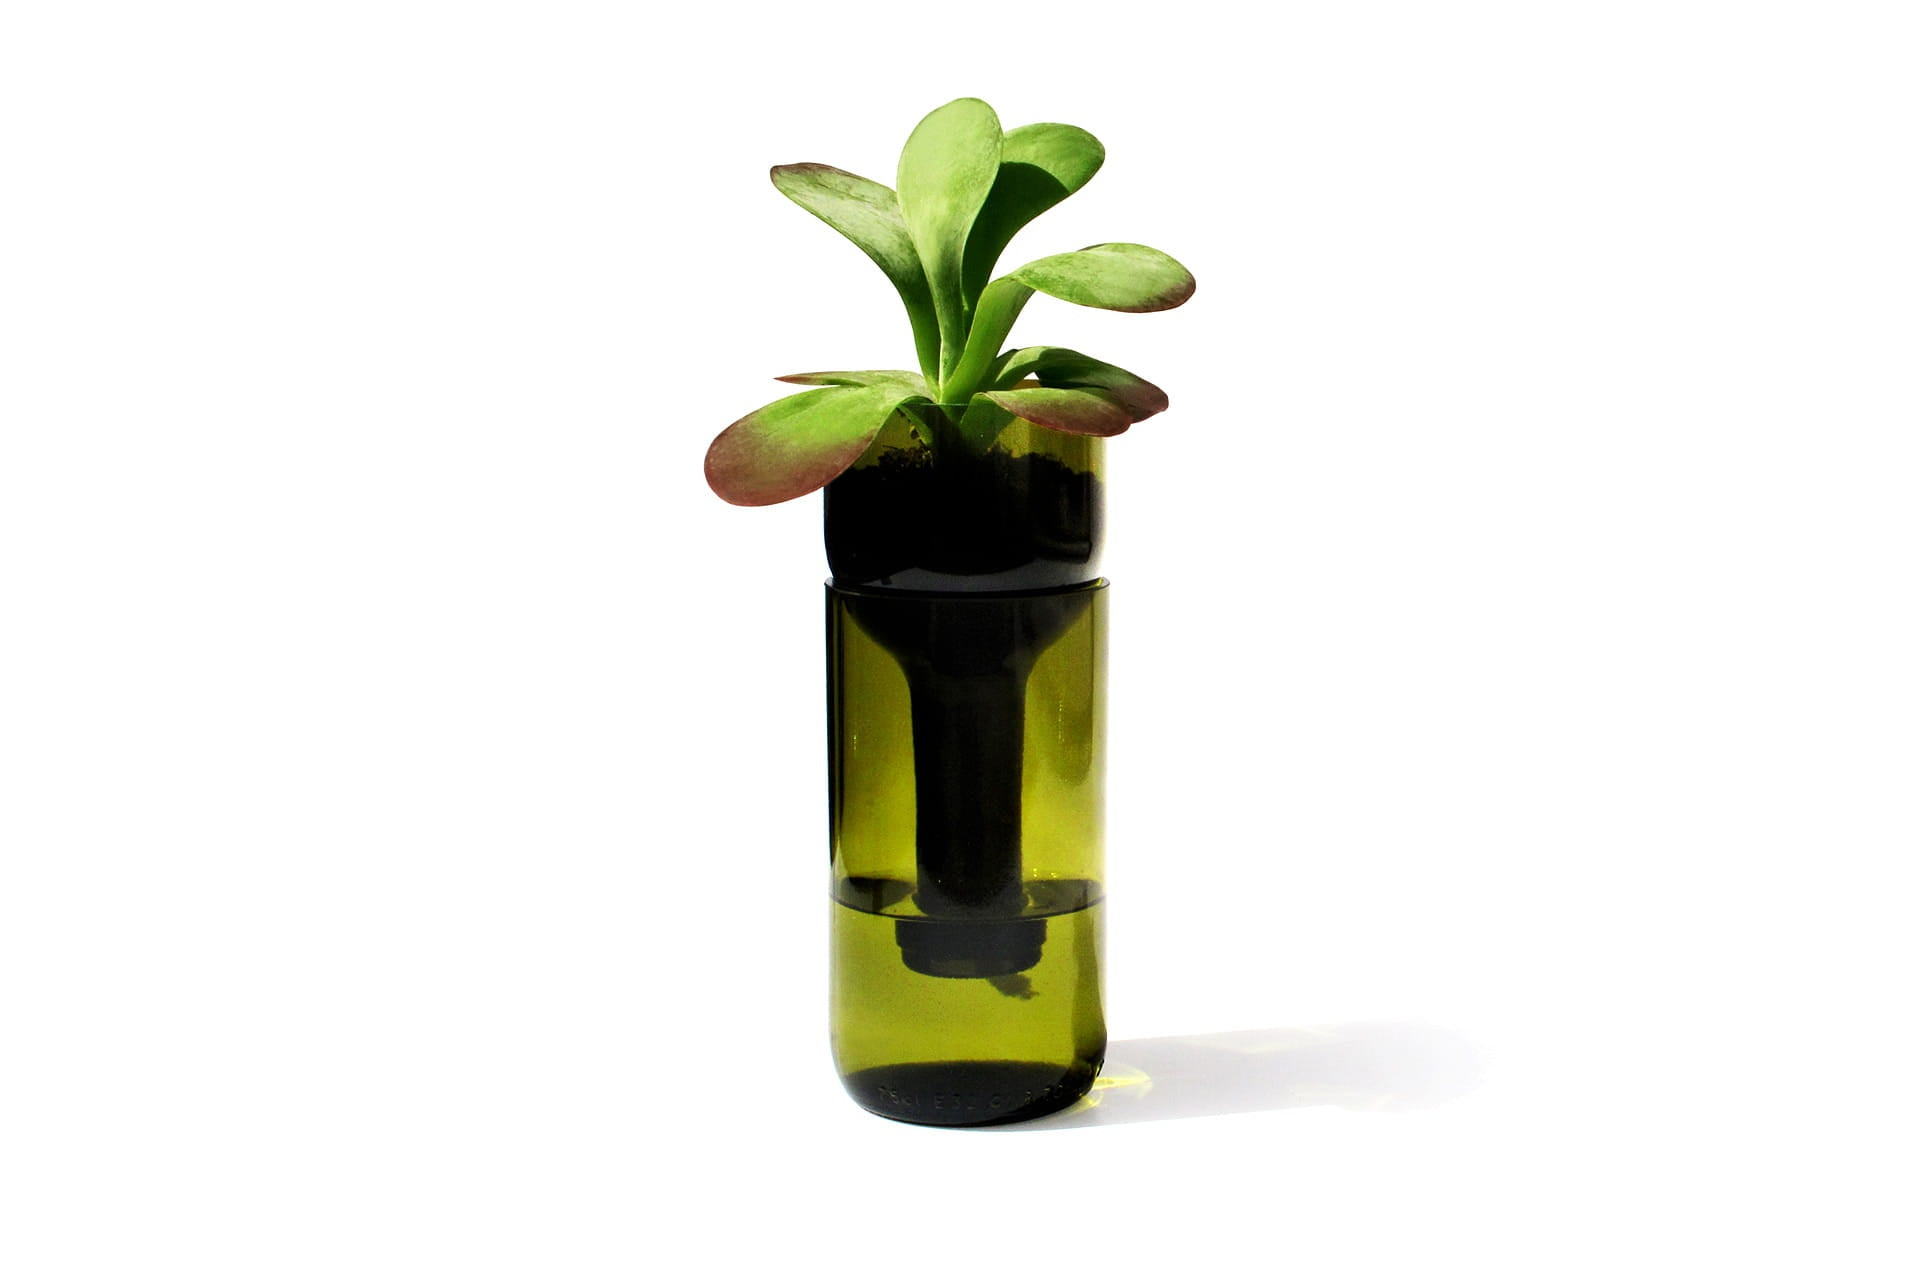 Jardinière autonome vert bouteille Watering Bottle by SideBySide-PARIDEO design durable